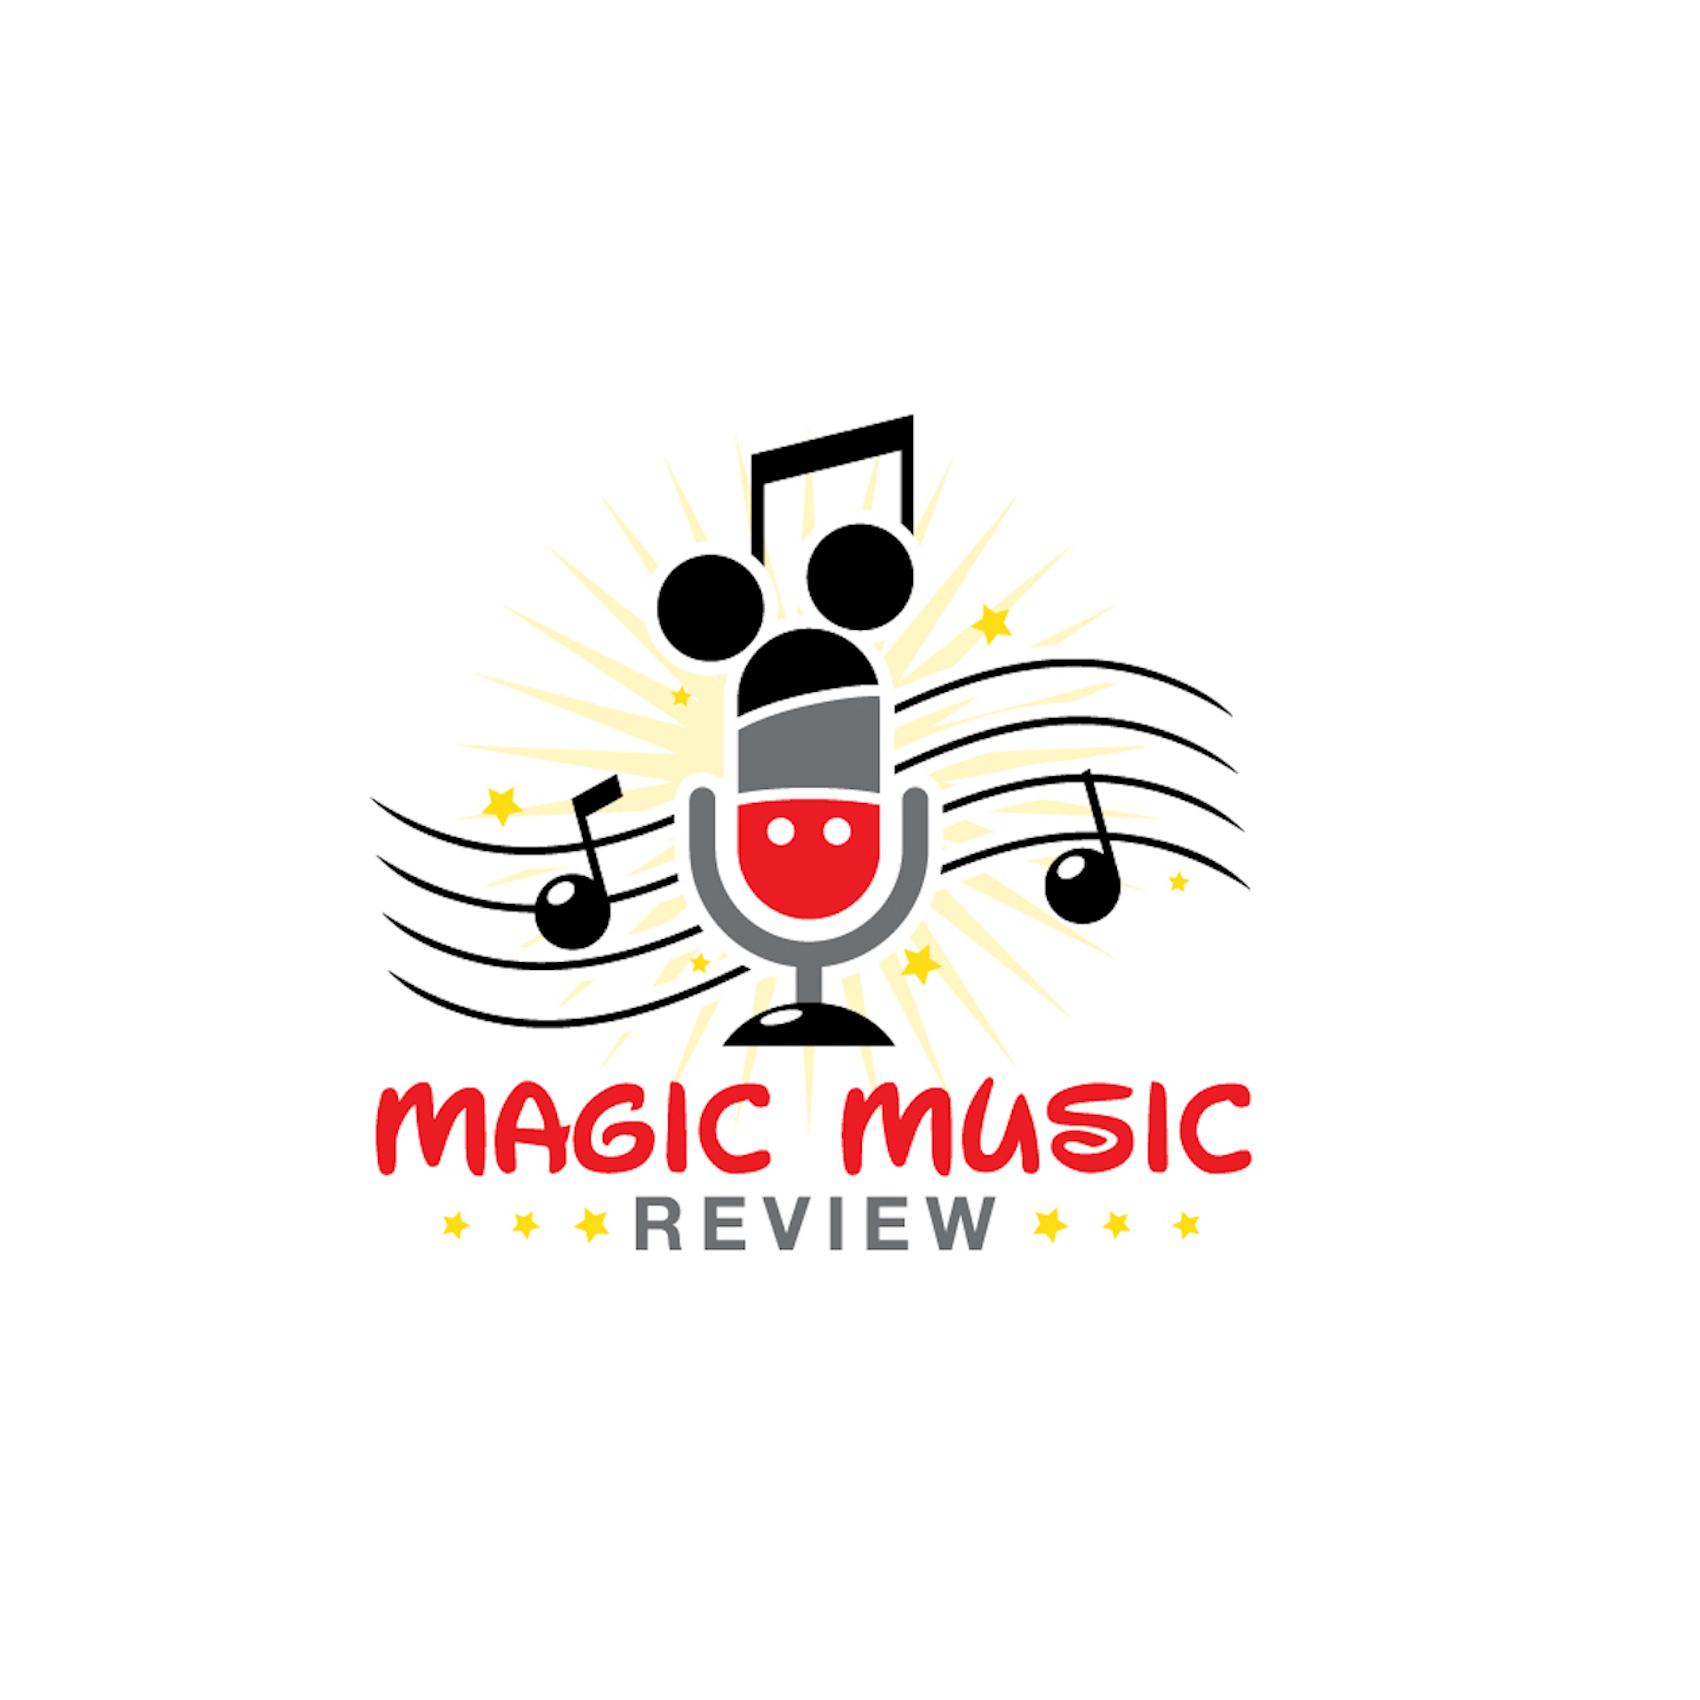 Magic Music Review